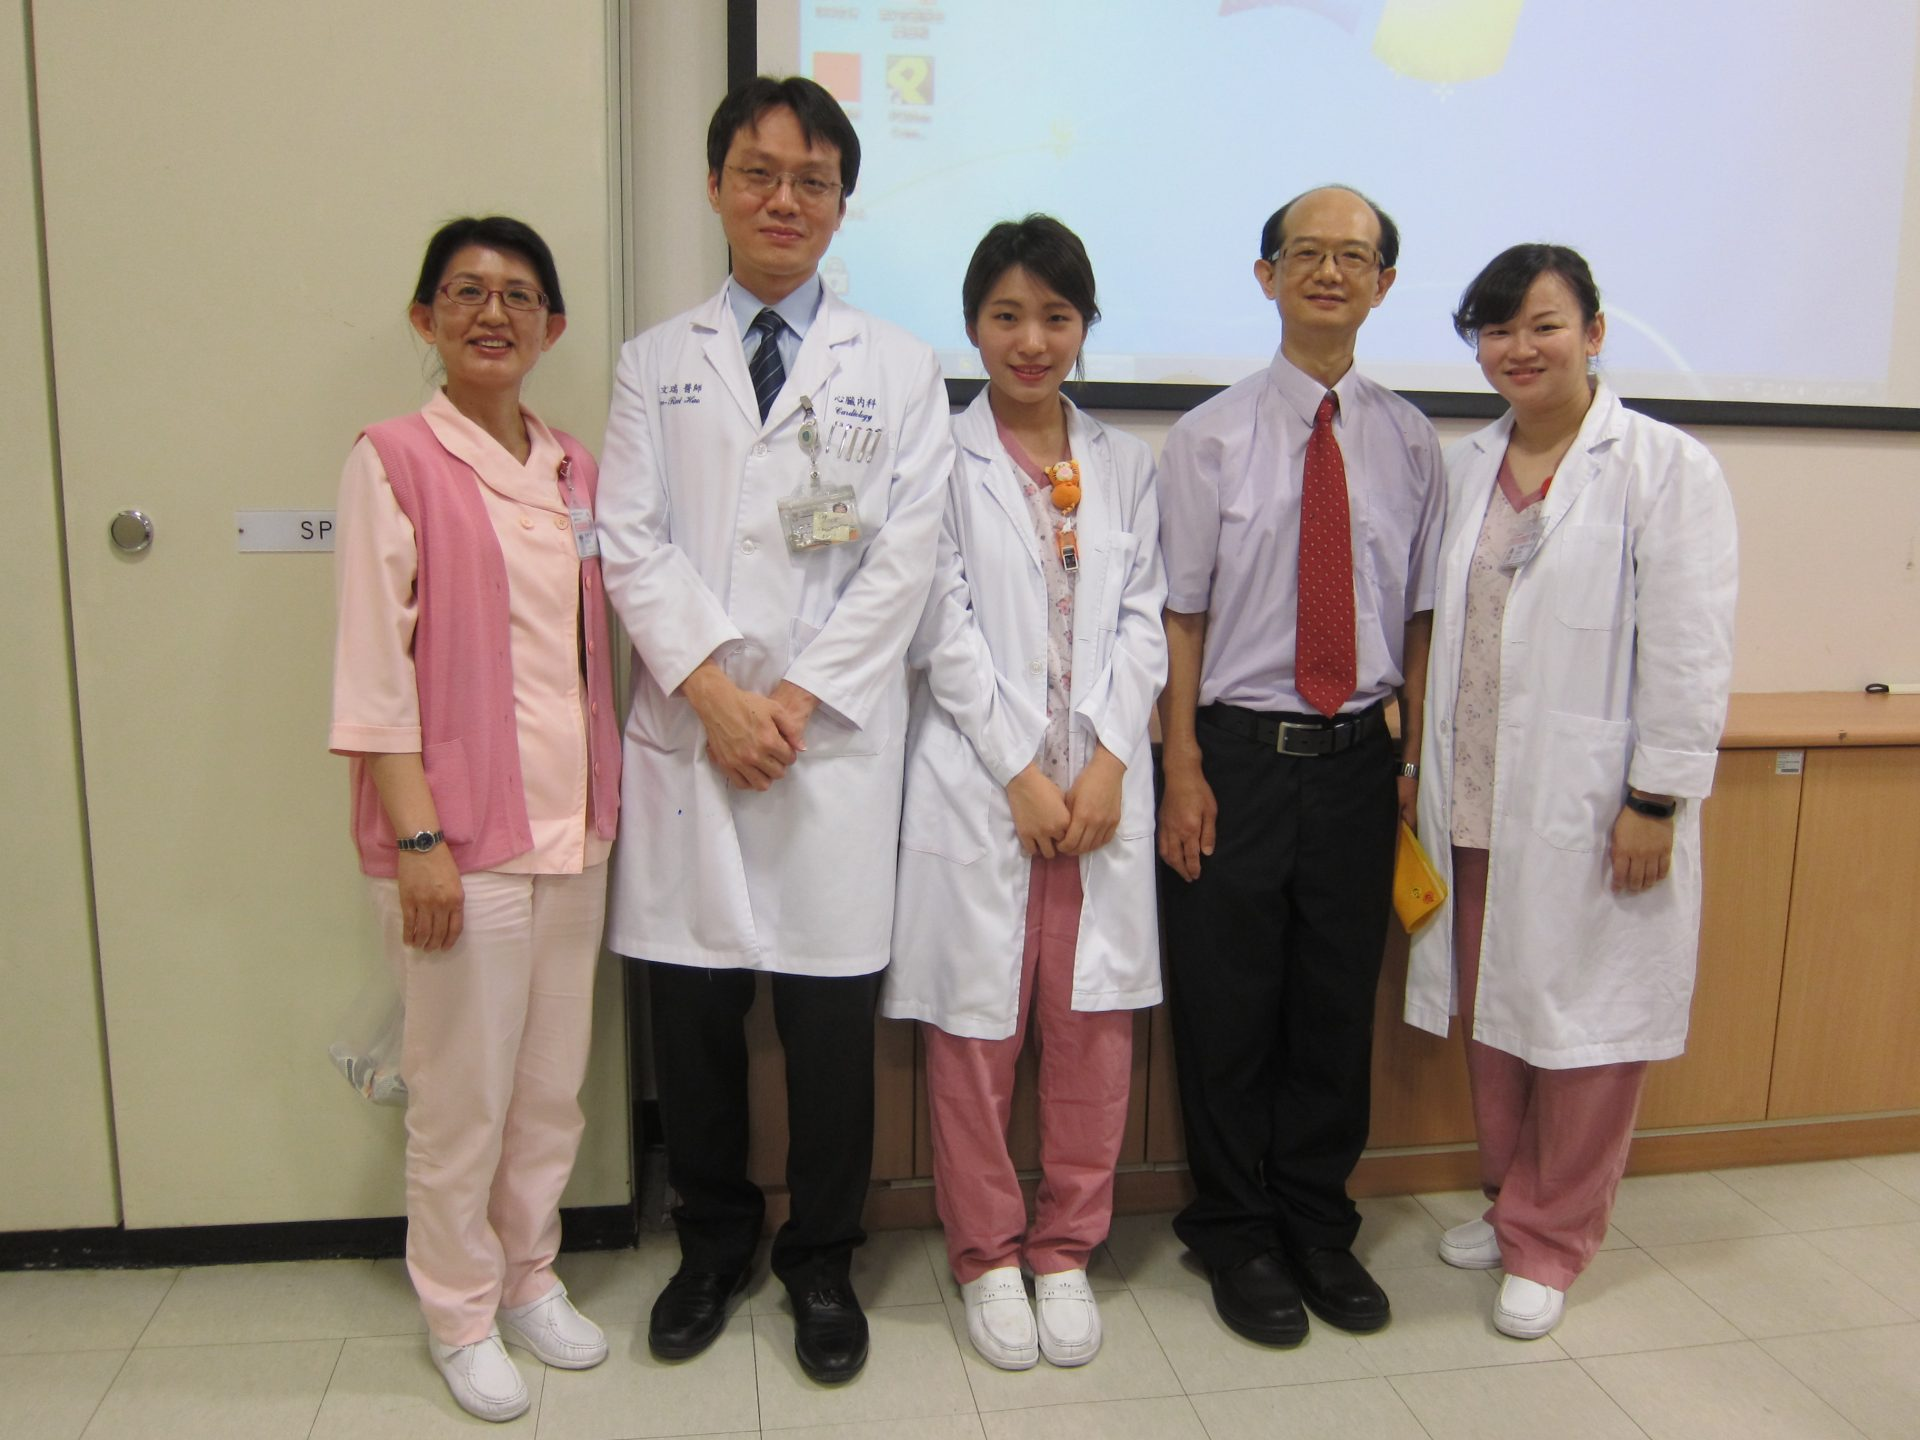 Mr. Hong poses with the medical team of the Taipei Medical University Shuang-Ho Hospital after he made a full recovery from heart failure for over one hour. (Image: Courtesy of Chung Yuan)